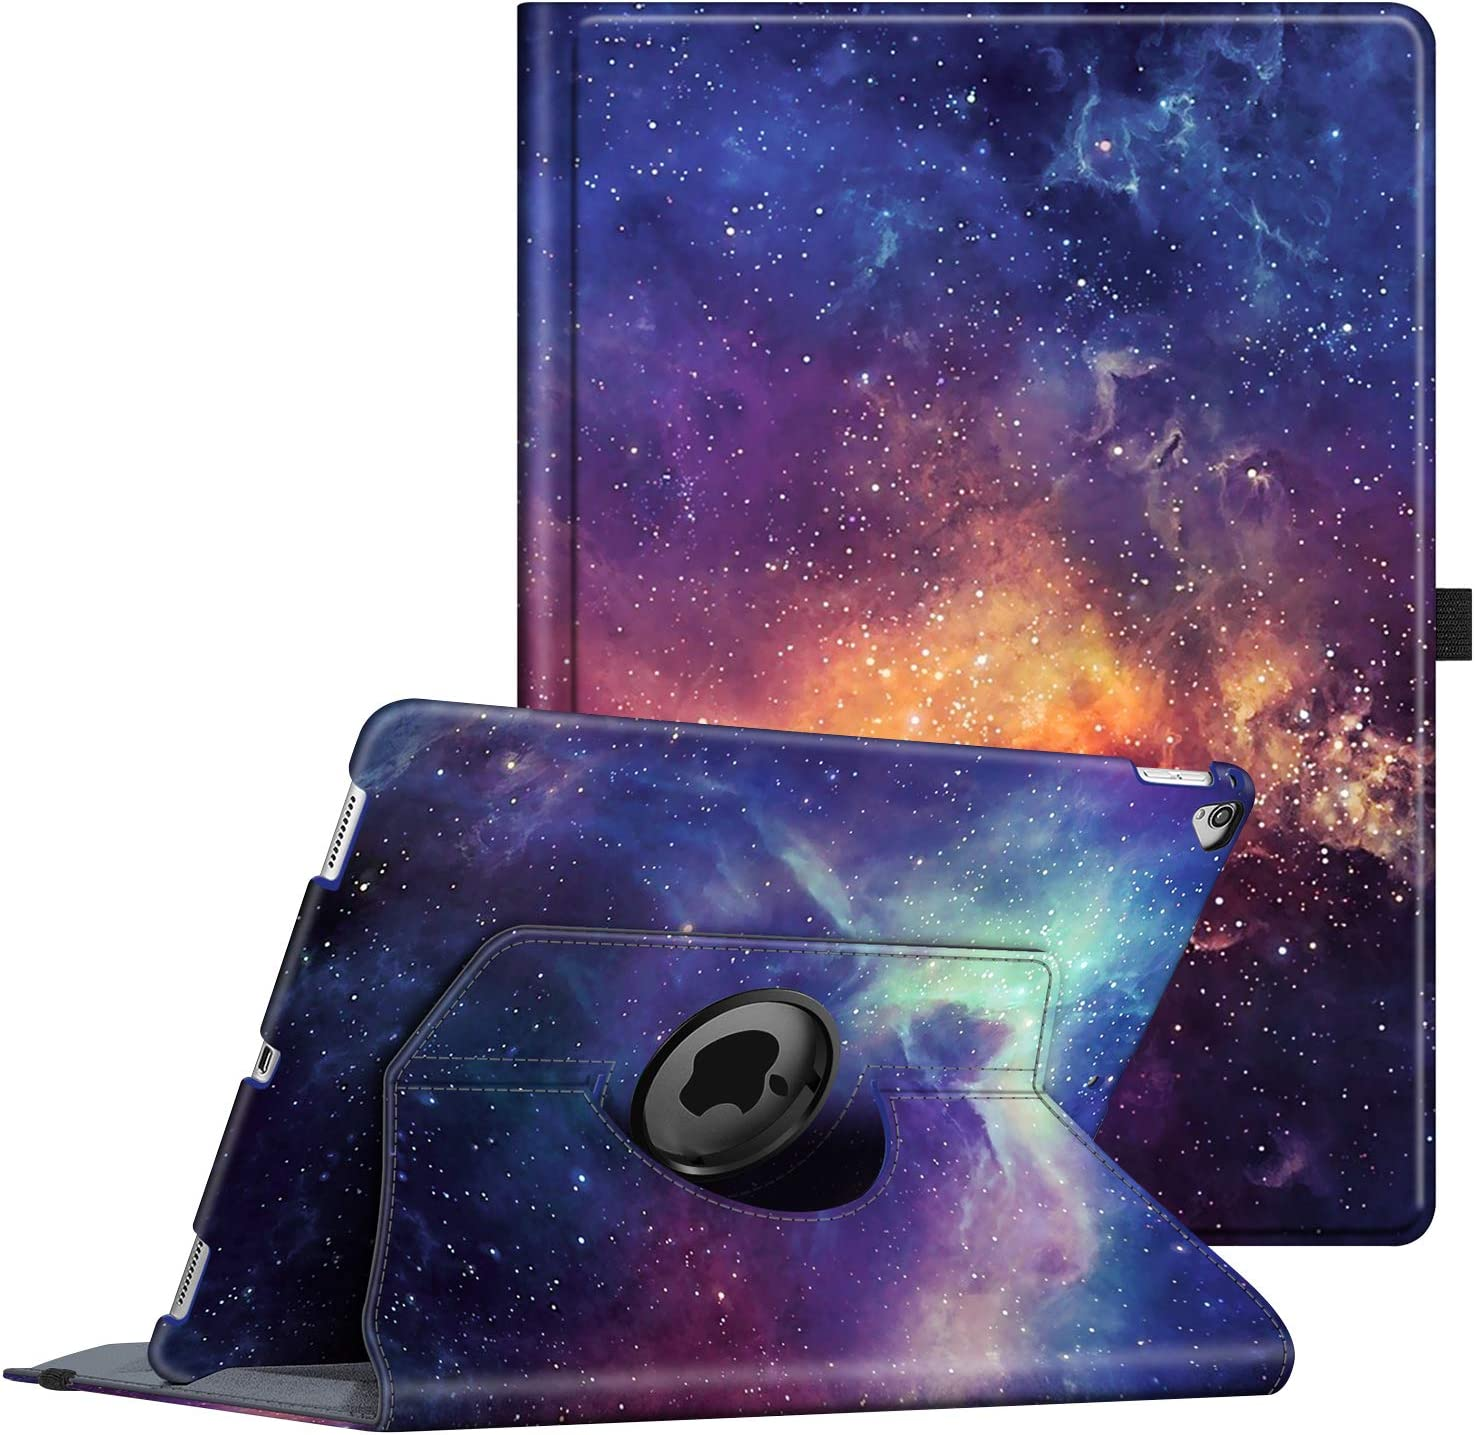 Fintie Rotating Case for iPad Pro 12.9 (2nd Gen) 2017 / iPad Pro 12.9 (1st Gen) 2015-360 Degree Rotating Stand Case with Smart Protective Cover Auto Sleep/Wake, Galaxy